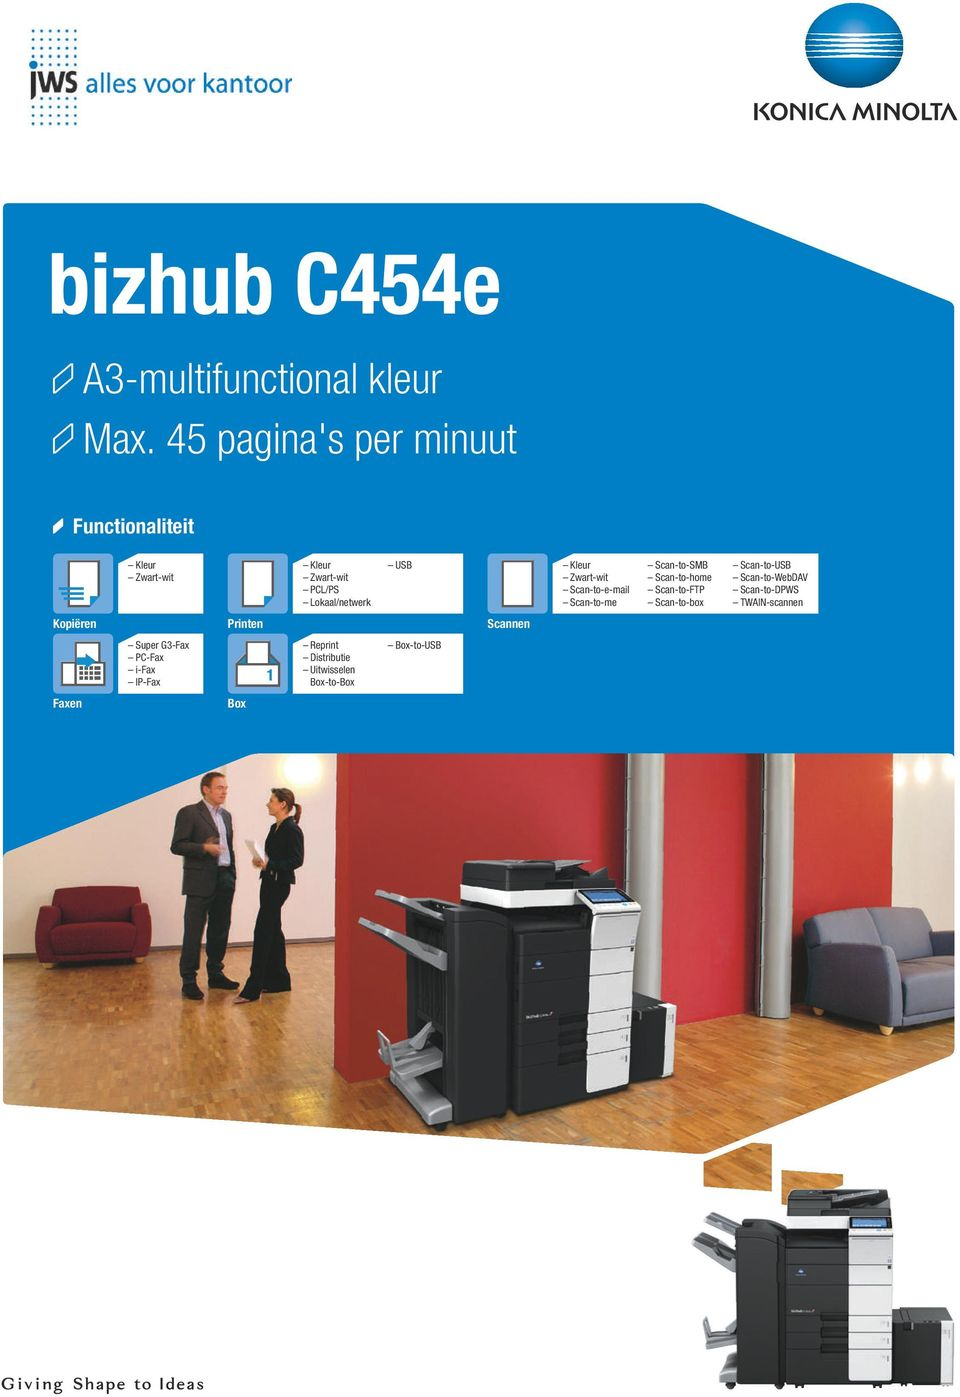 Scan-to-SMB Scan-to-home Scan-to-FT Scan-to-box Scan-to-USB Scan-to-WebDAV Scan-to-DWS